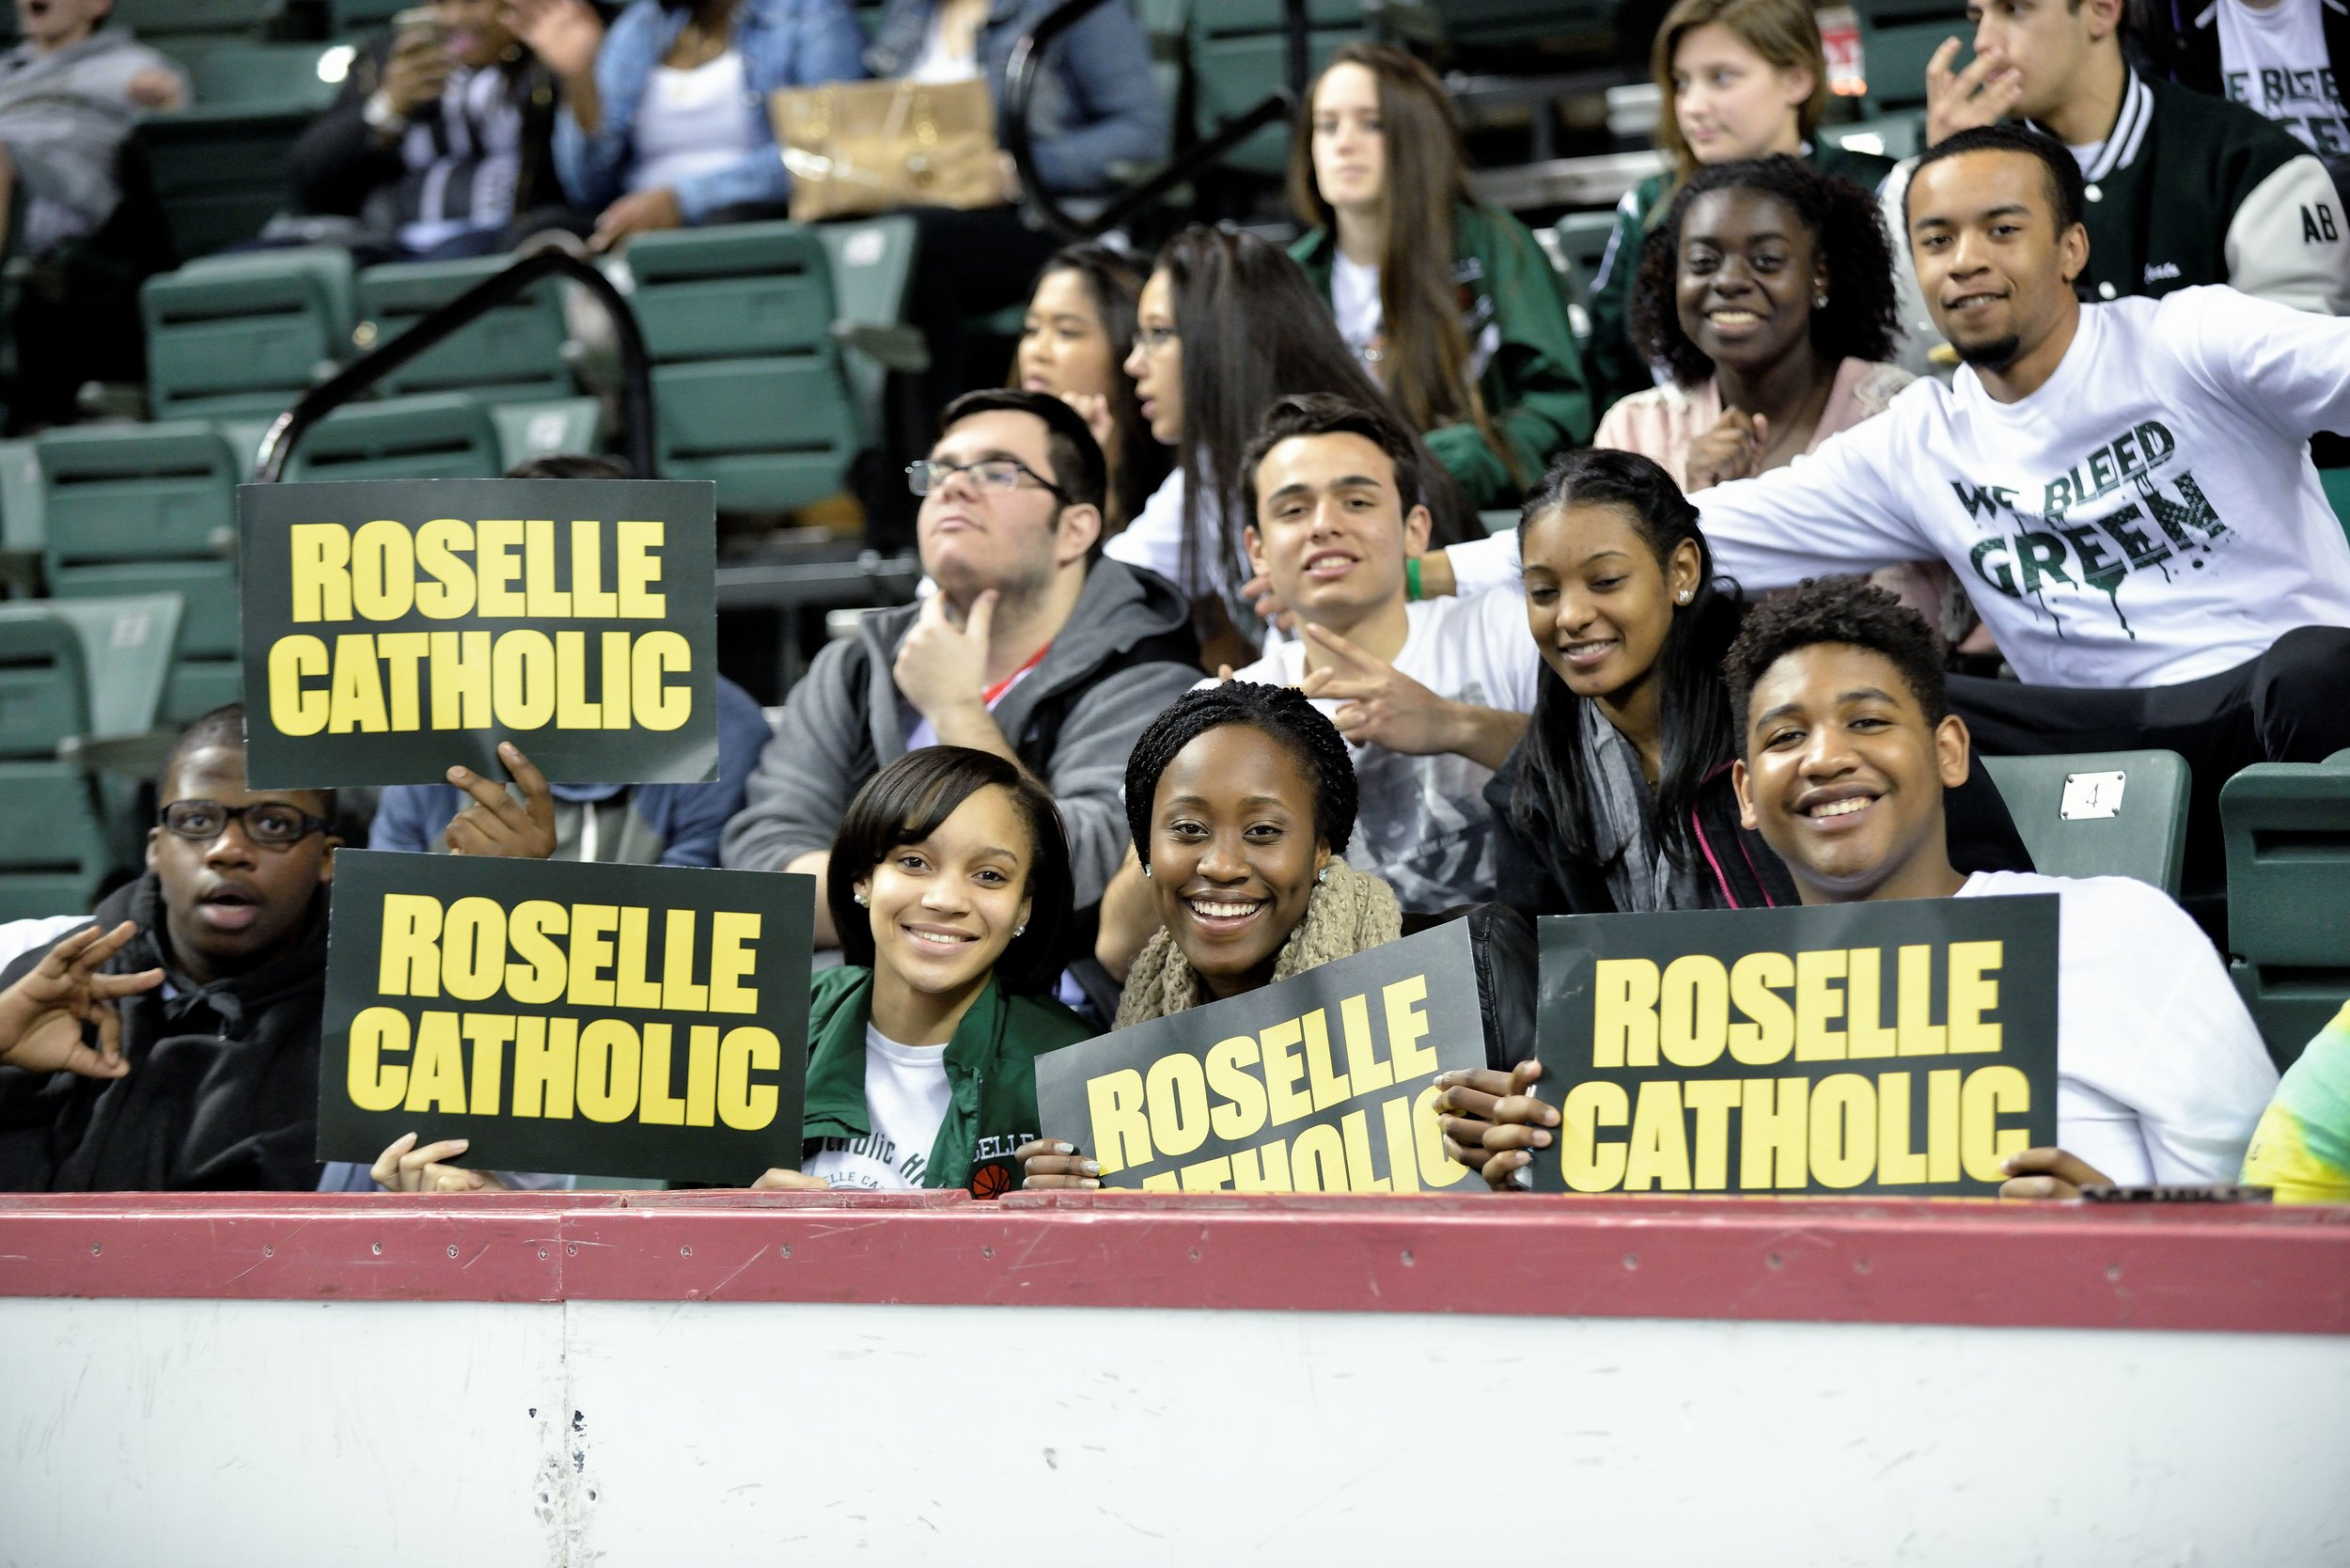 Athletic Hall of Fame - Since their inception, Roselle Catholic High School and Girls Catholic High School held a strong athletic tradition.  The Roselle Catholic Hall of Fame was established to permanently honor the elite Roselle Catholic and GIrls Catholic graduates, coaches, and teams for their contributions to Roselle Catholic and Girls Catholic athletics and their embodiment of the Roselle Catholic mission of being successful, responsible, and ethical citizens while as a part of the Lions community and beyond.